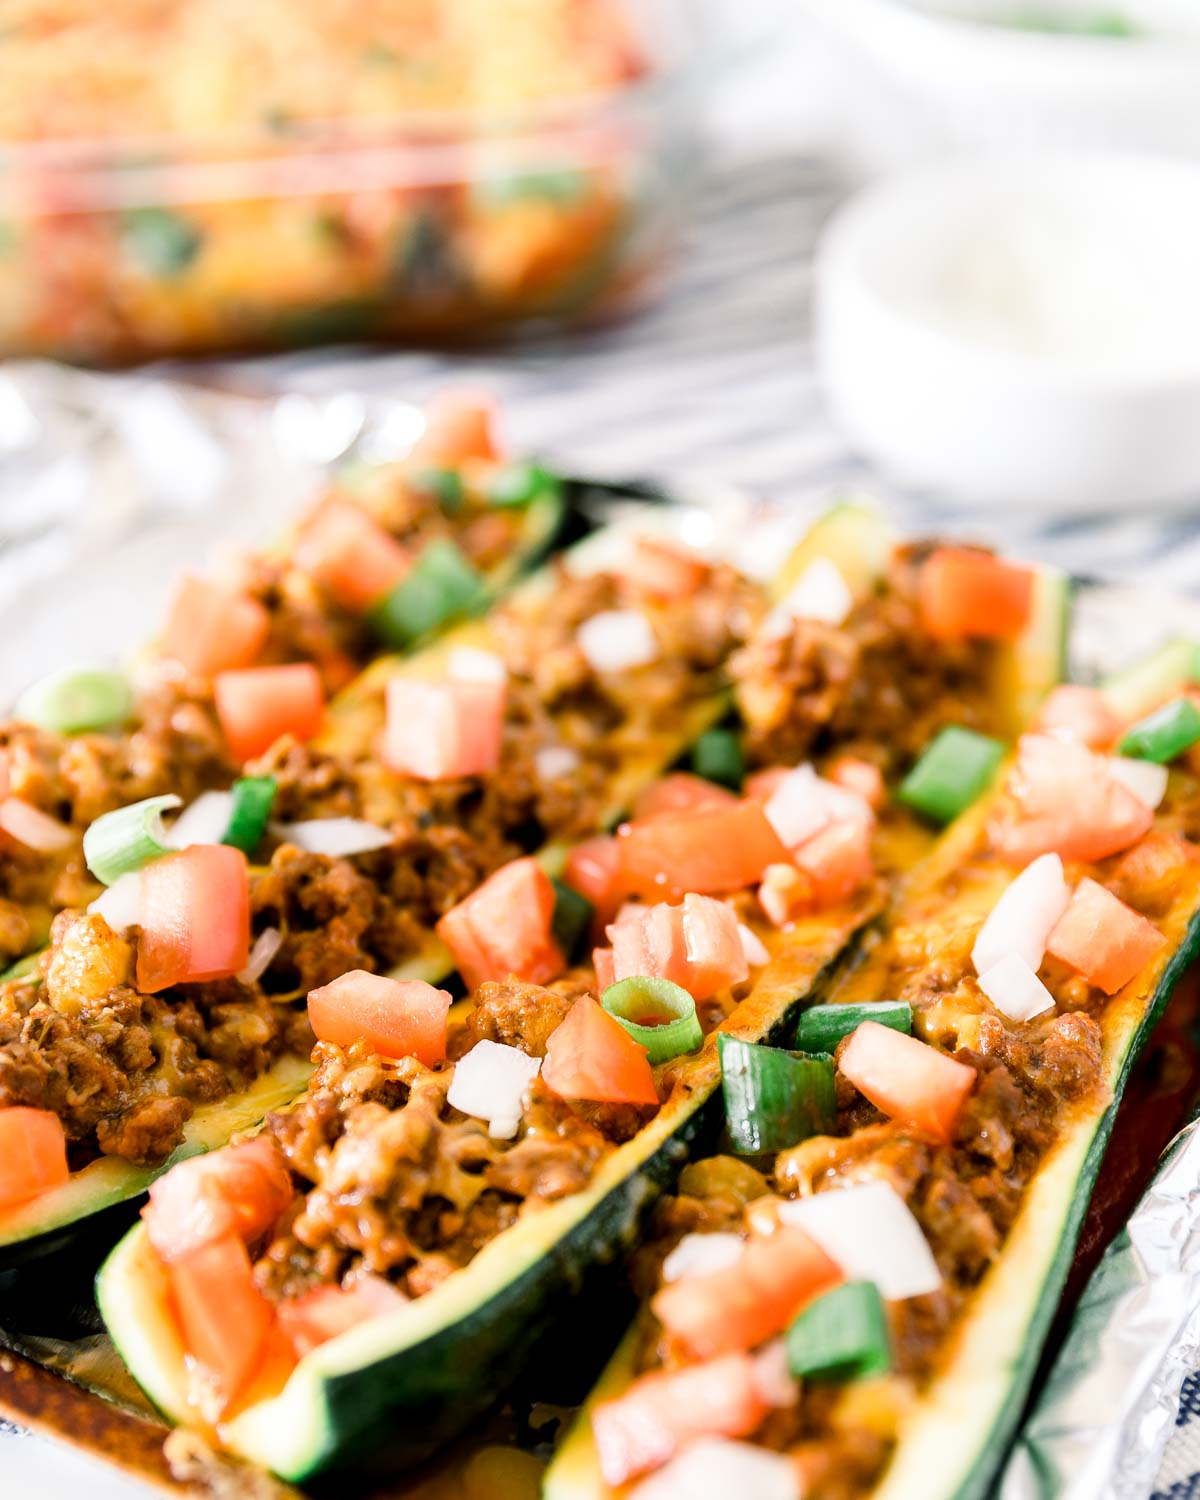 Zucchini Boats are perfect as an appetizer or main entree | espressomykitchen.com #zucchini #zucchinboats #healthyeating